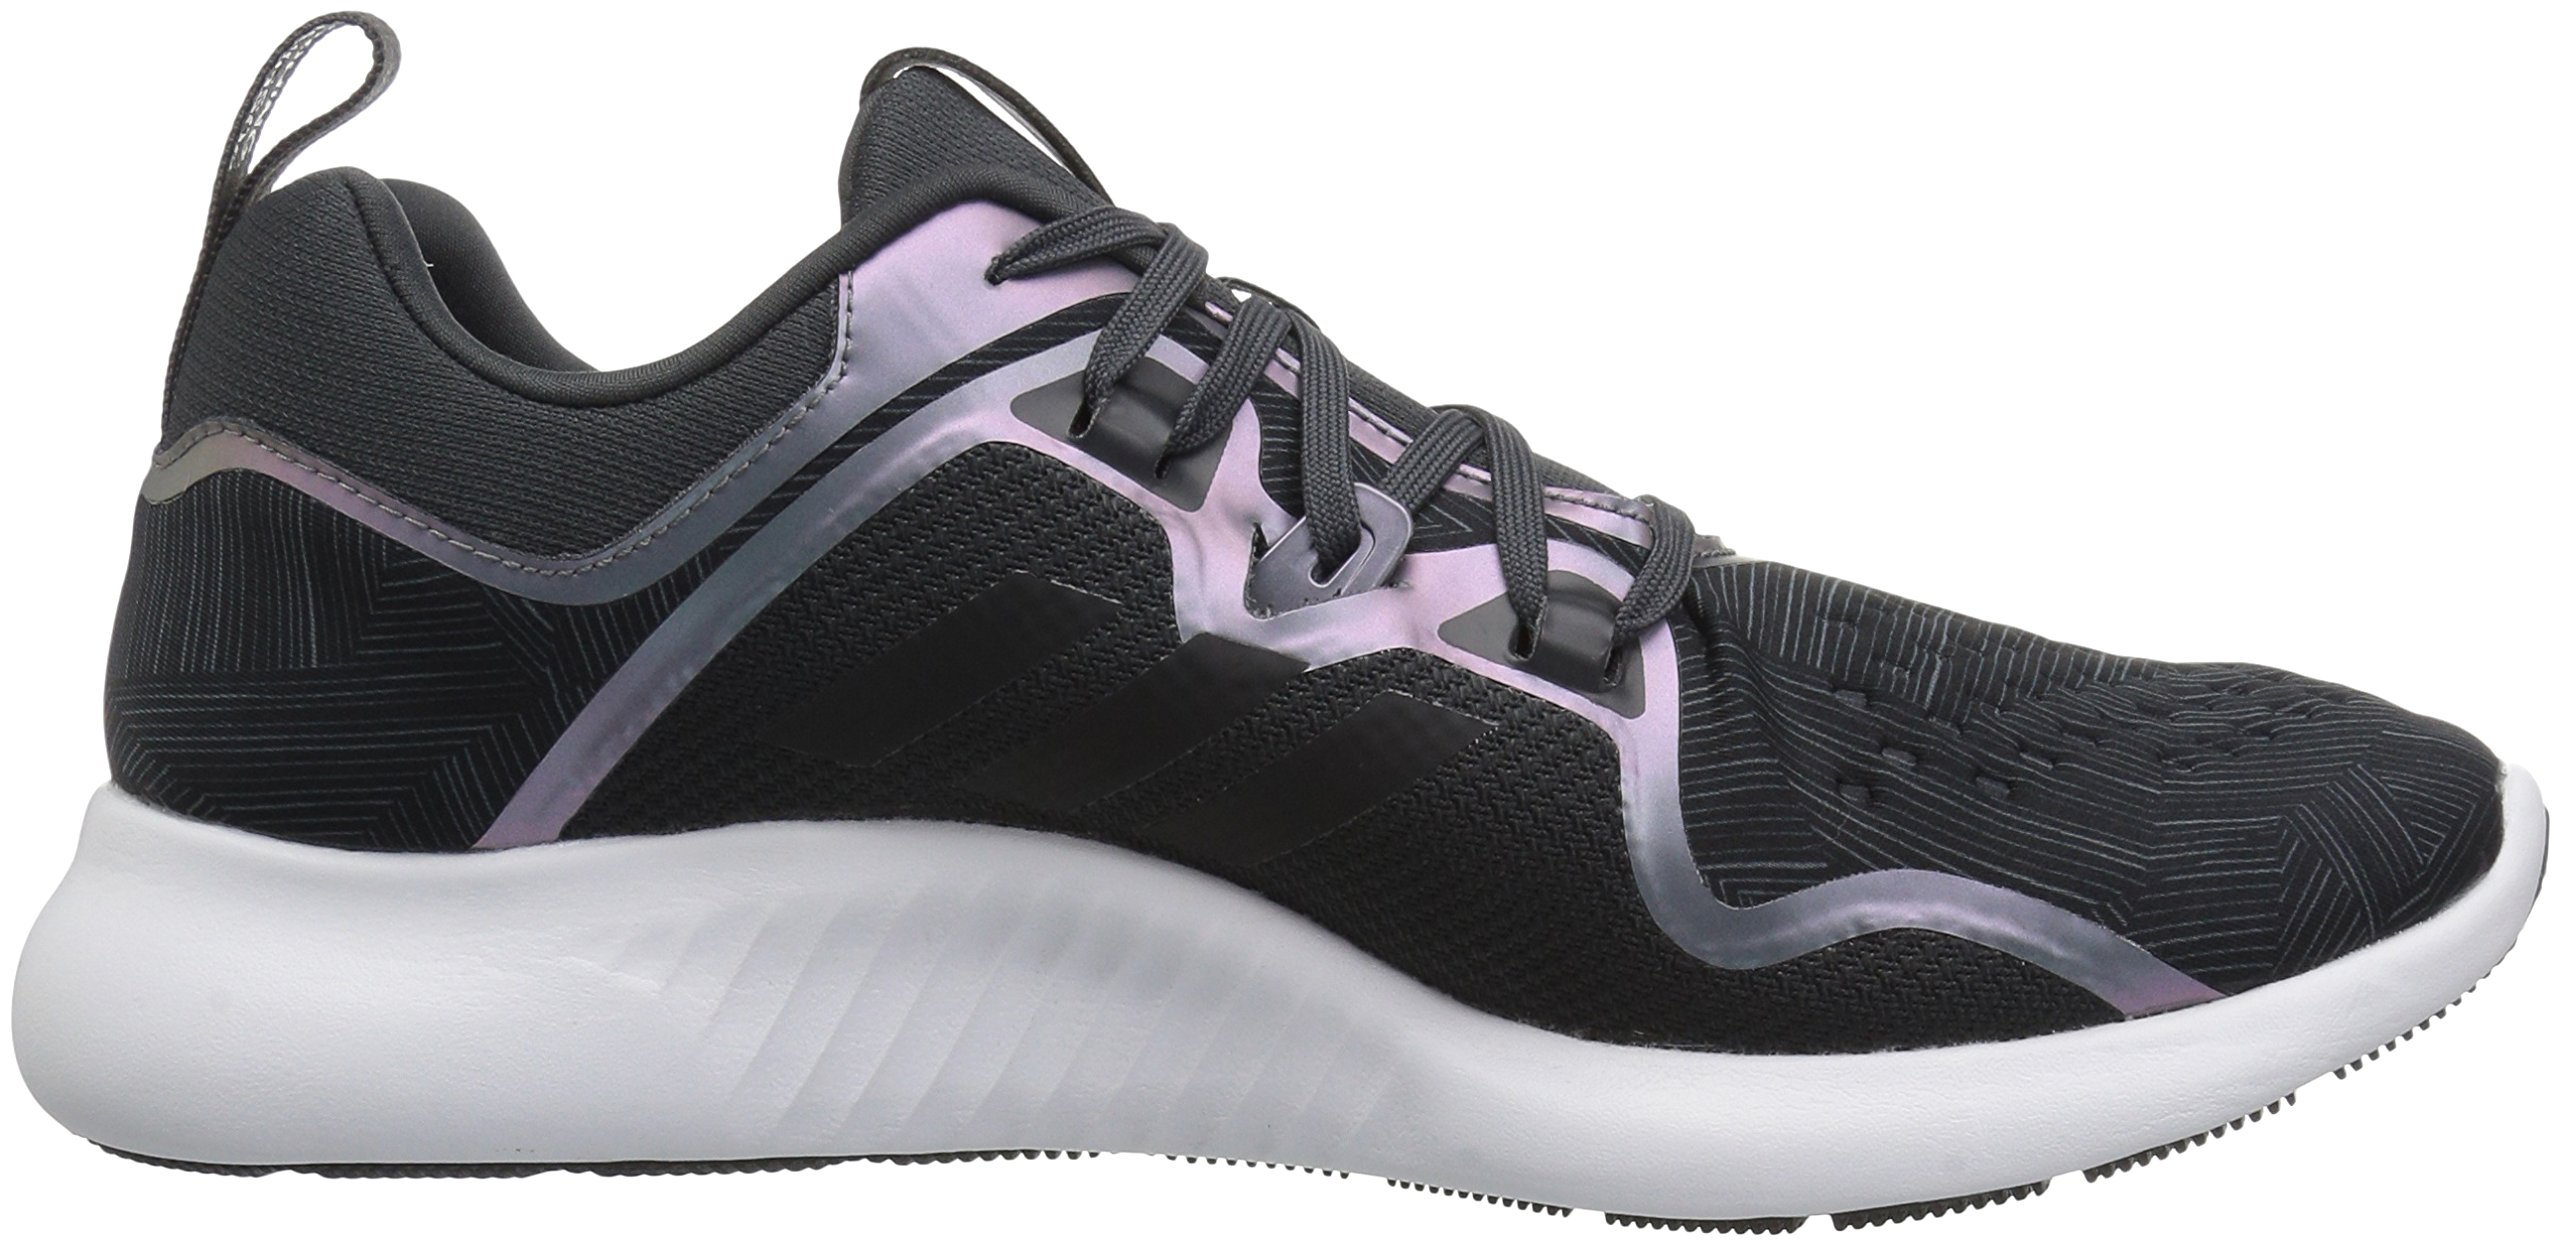 adidas Women's EdgeBounce Running Shoe Carbon/Black/Night Metallic 5.5 M US by adidas (Image #6)